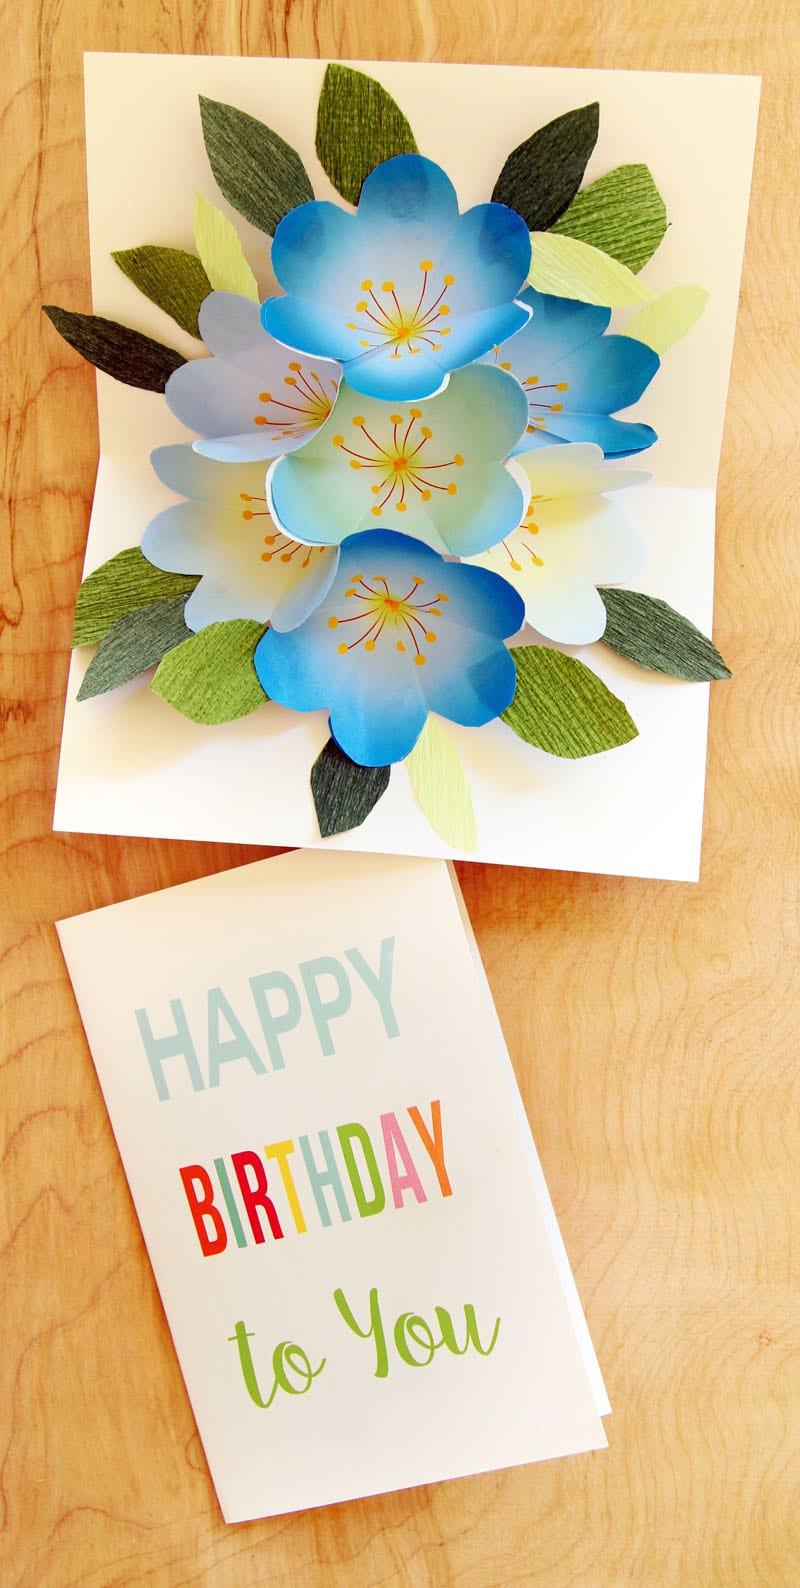 Free Printable Happy Birthday Card With Pop Up Bouquet - A Piece Of - Free Printable Birthday Pop Up Card Templates